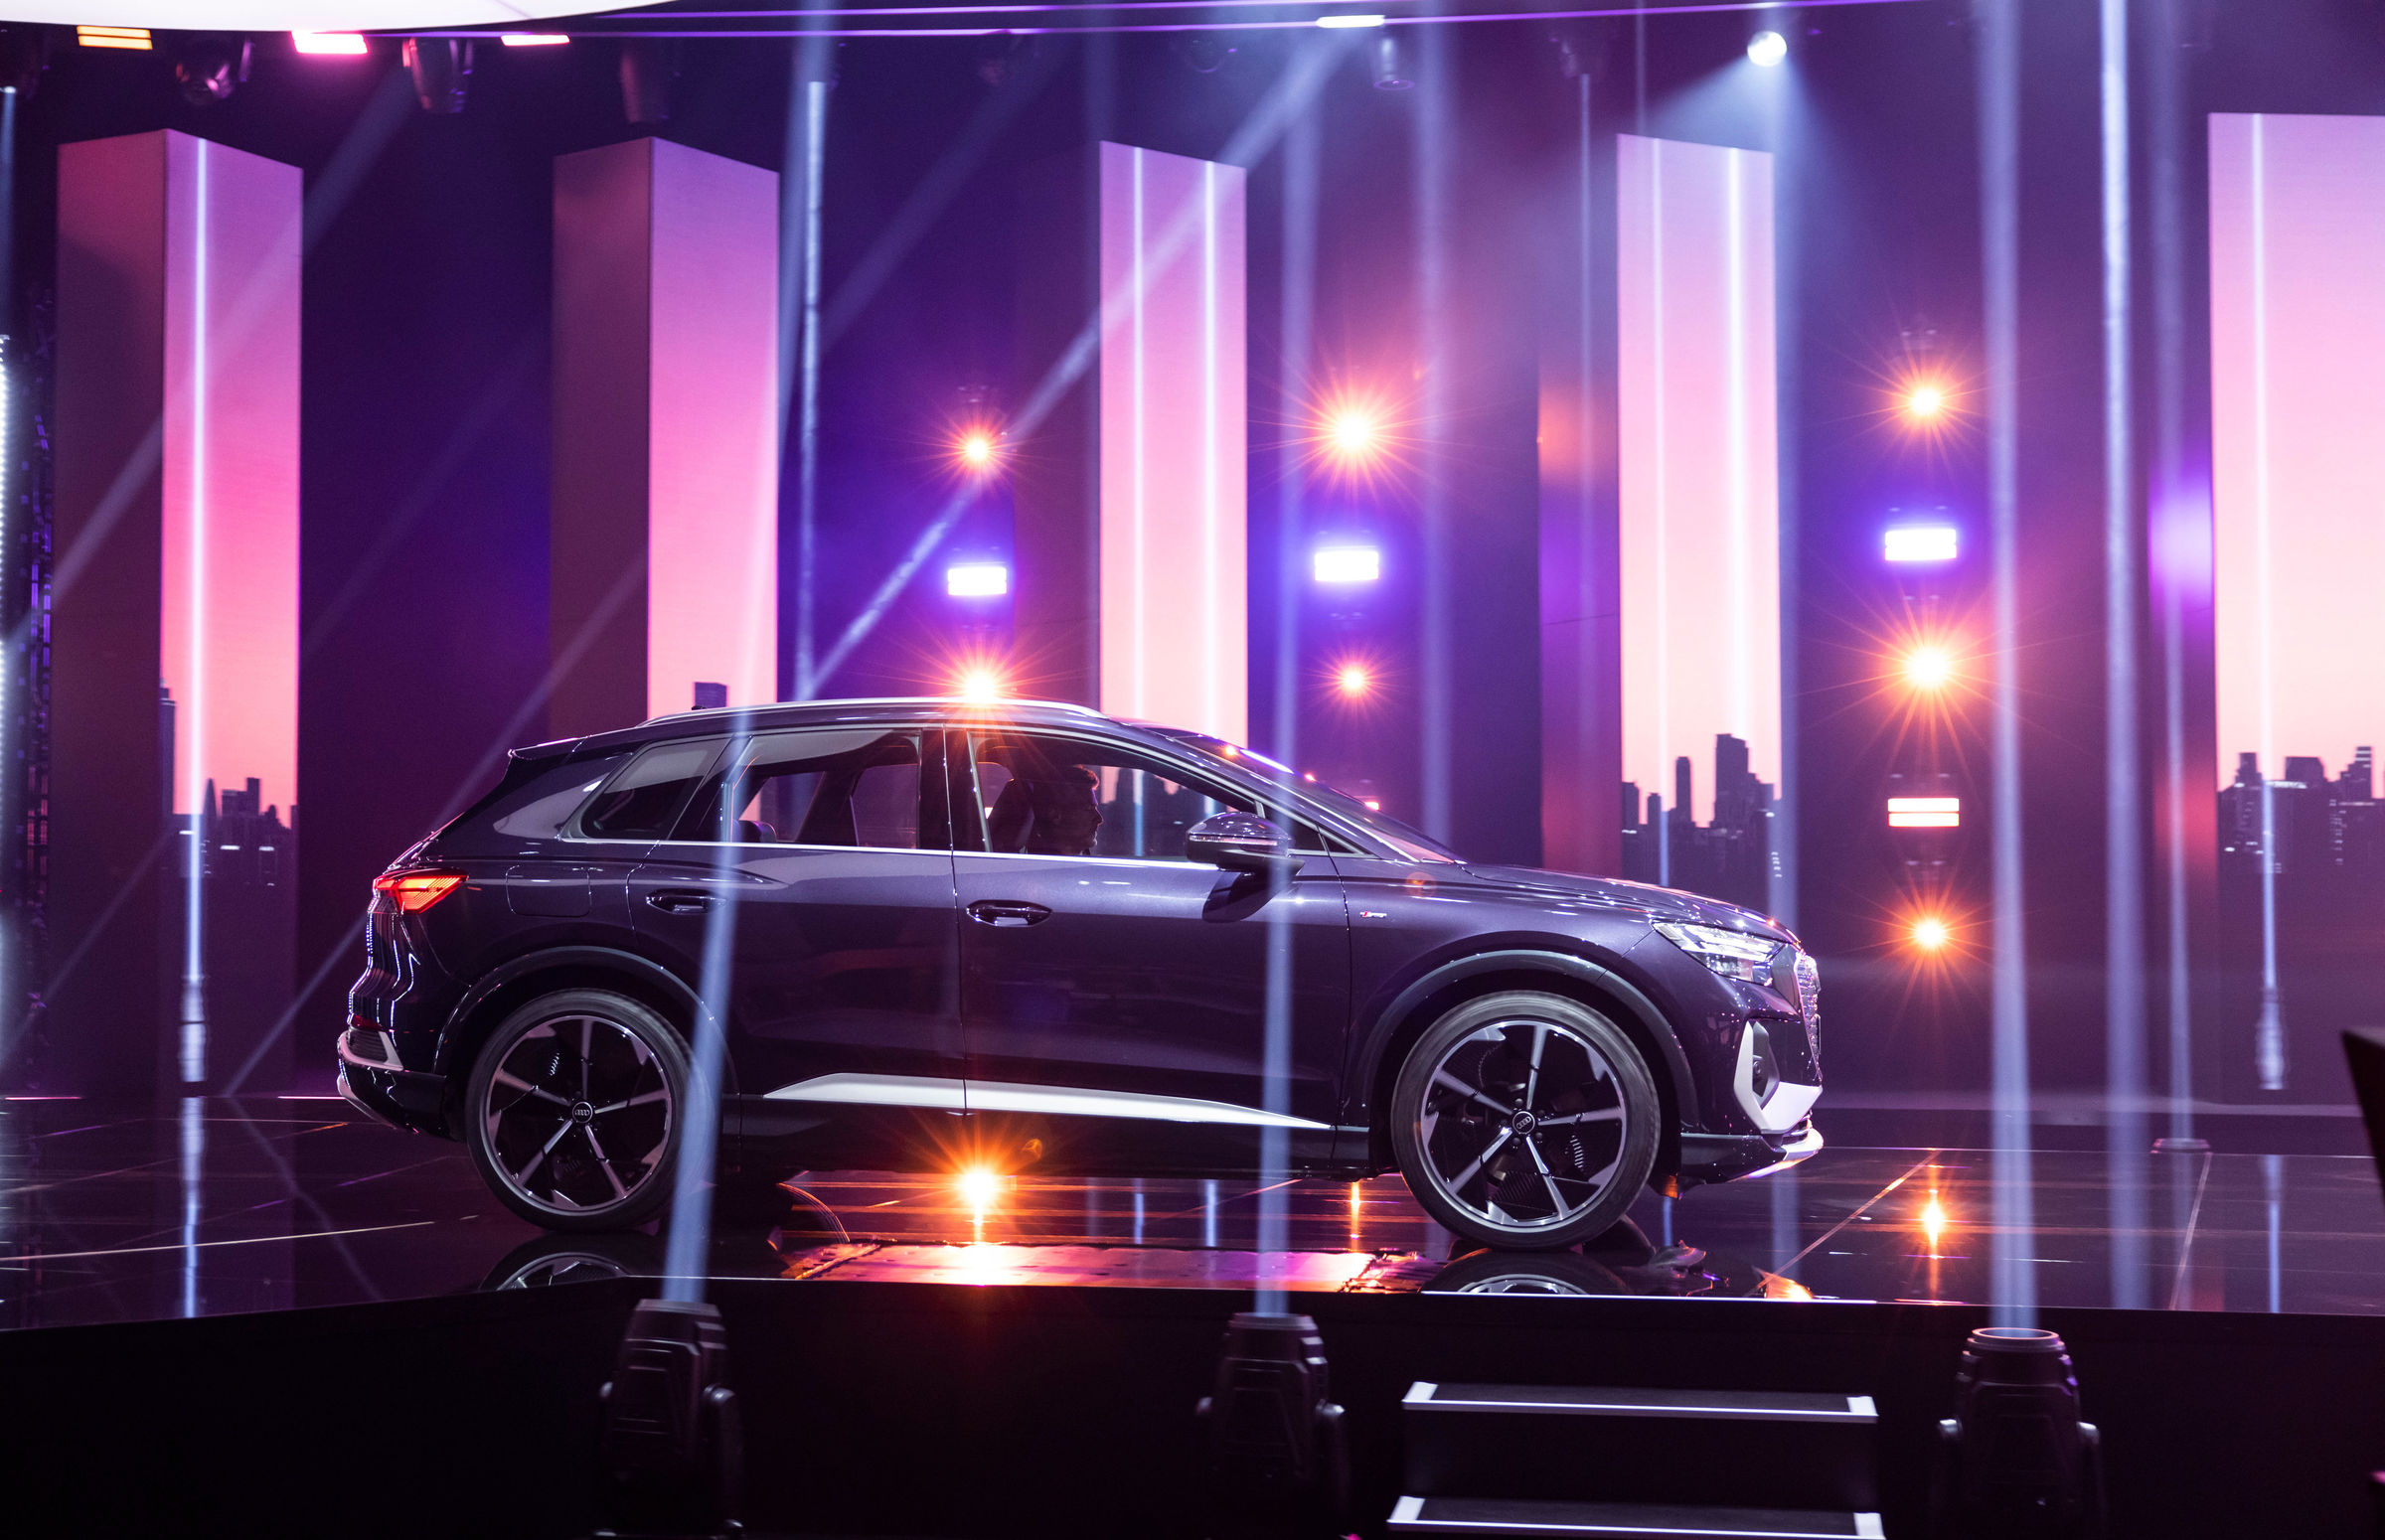 Electrifying: the online world premiere of the Audi Q4 e-tron - Image 8